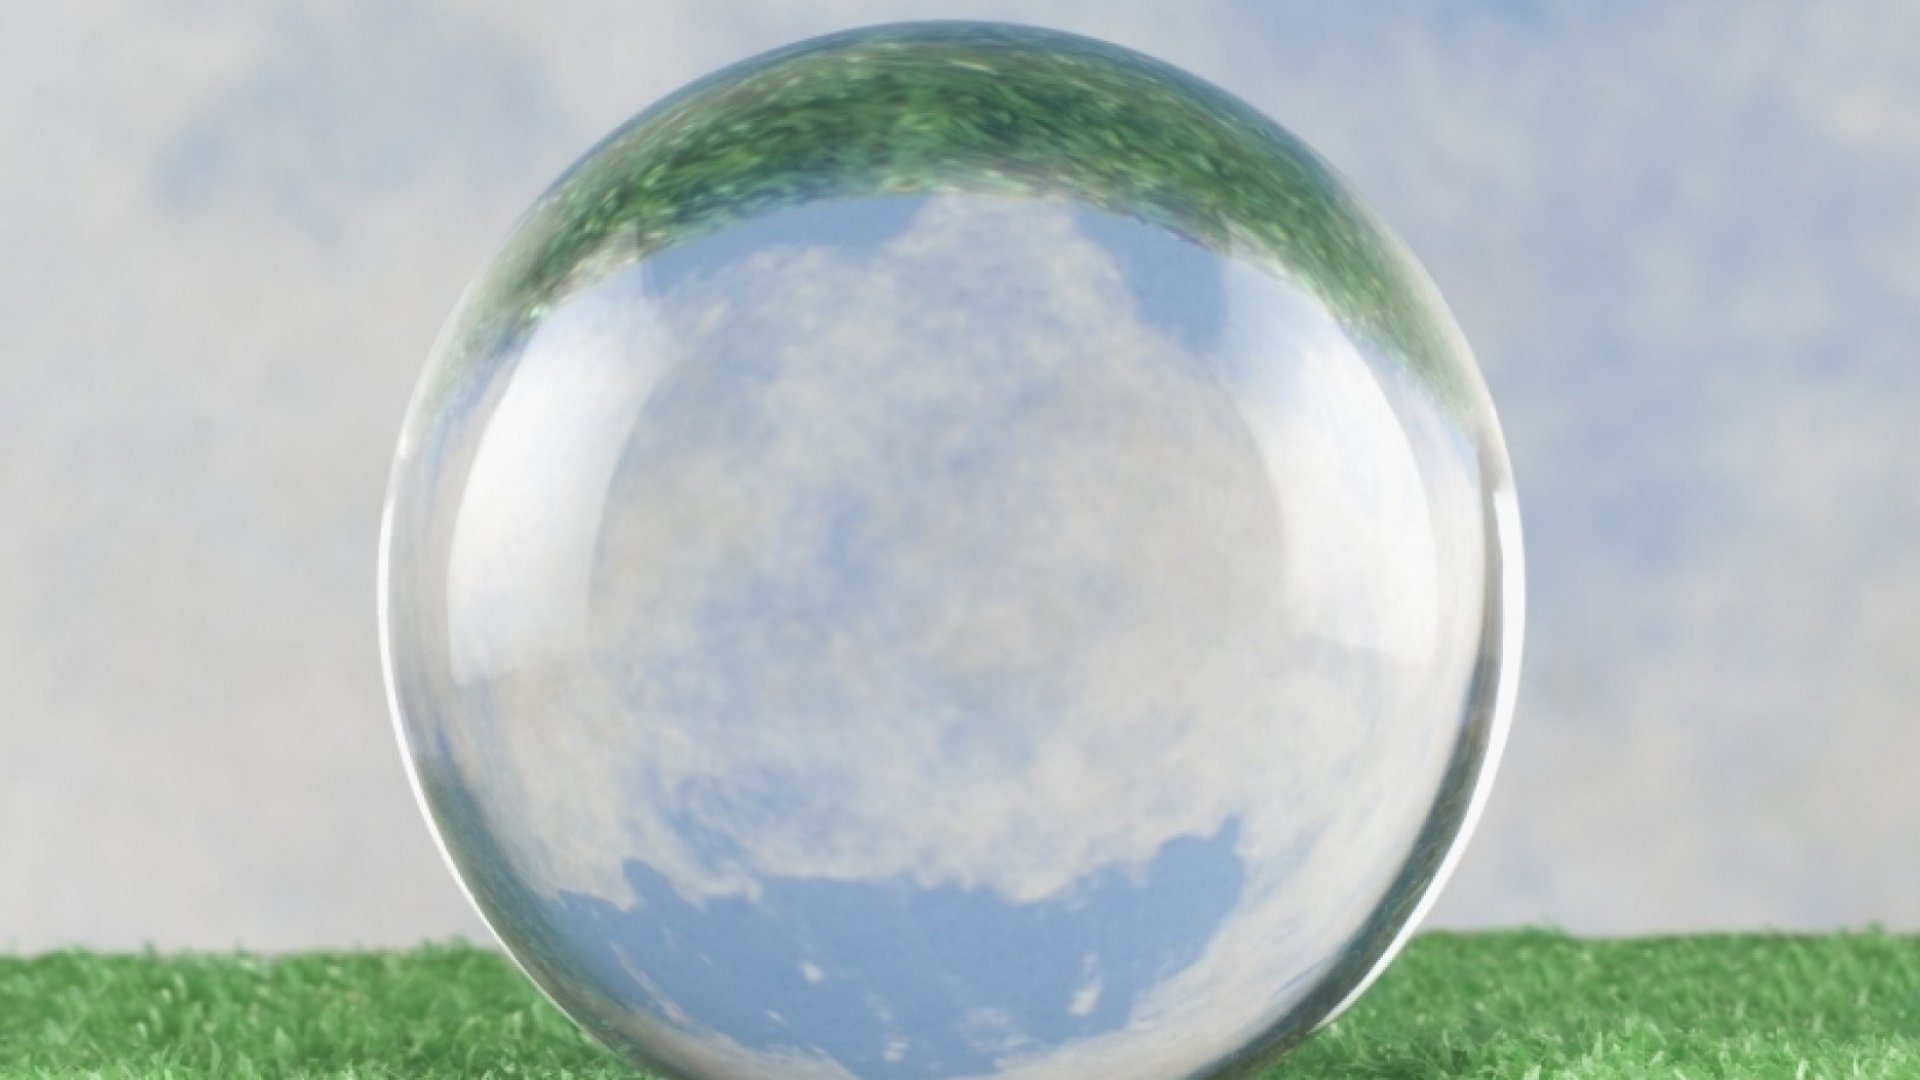 7 Predictions for How the Way We Work Will Transform in 2016